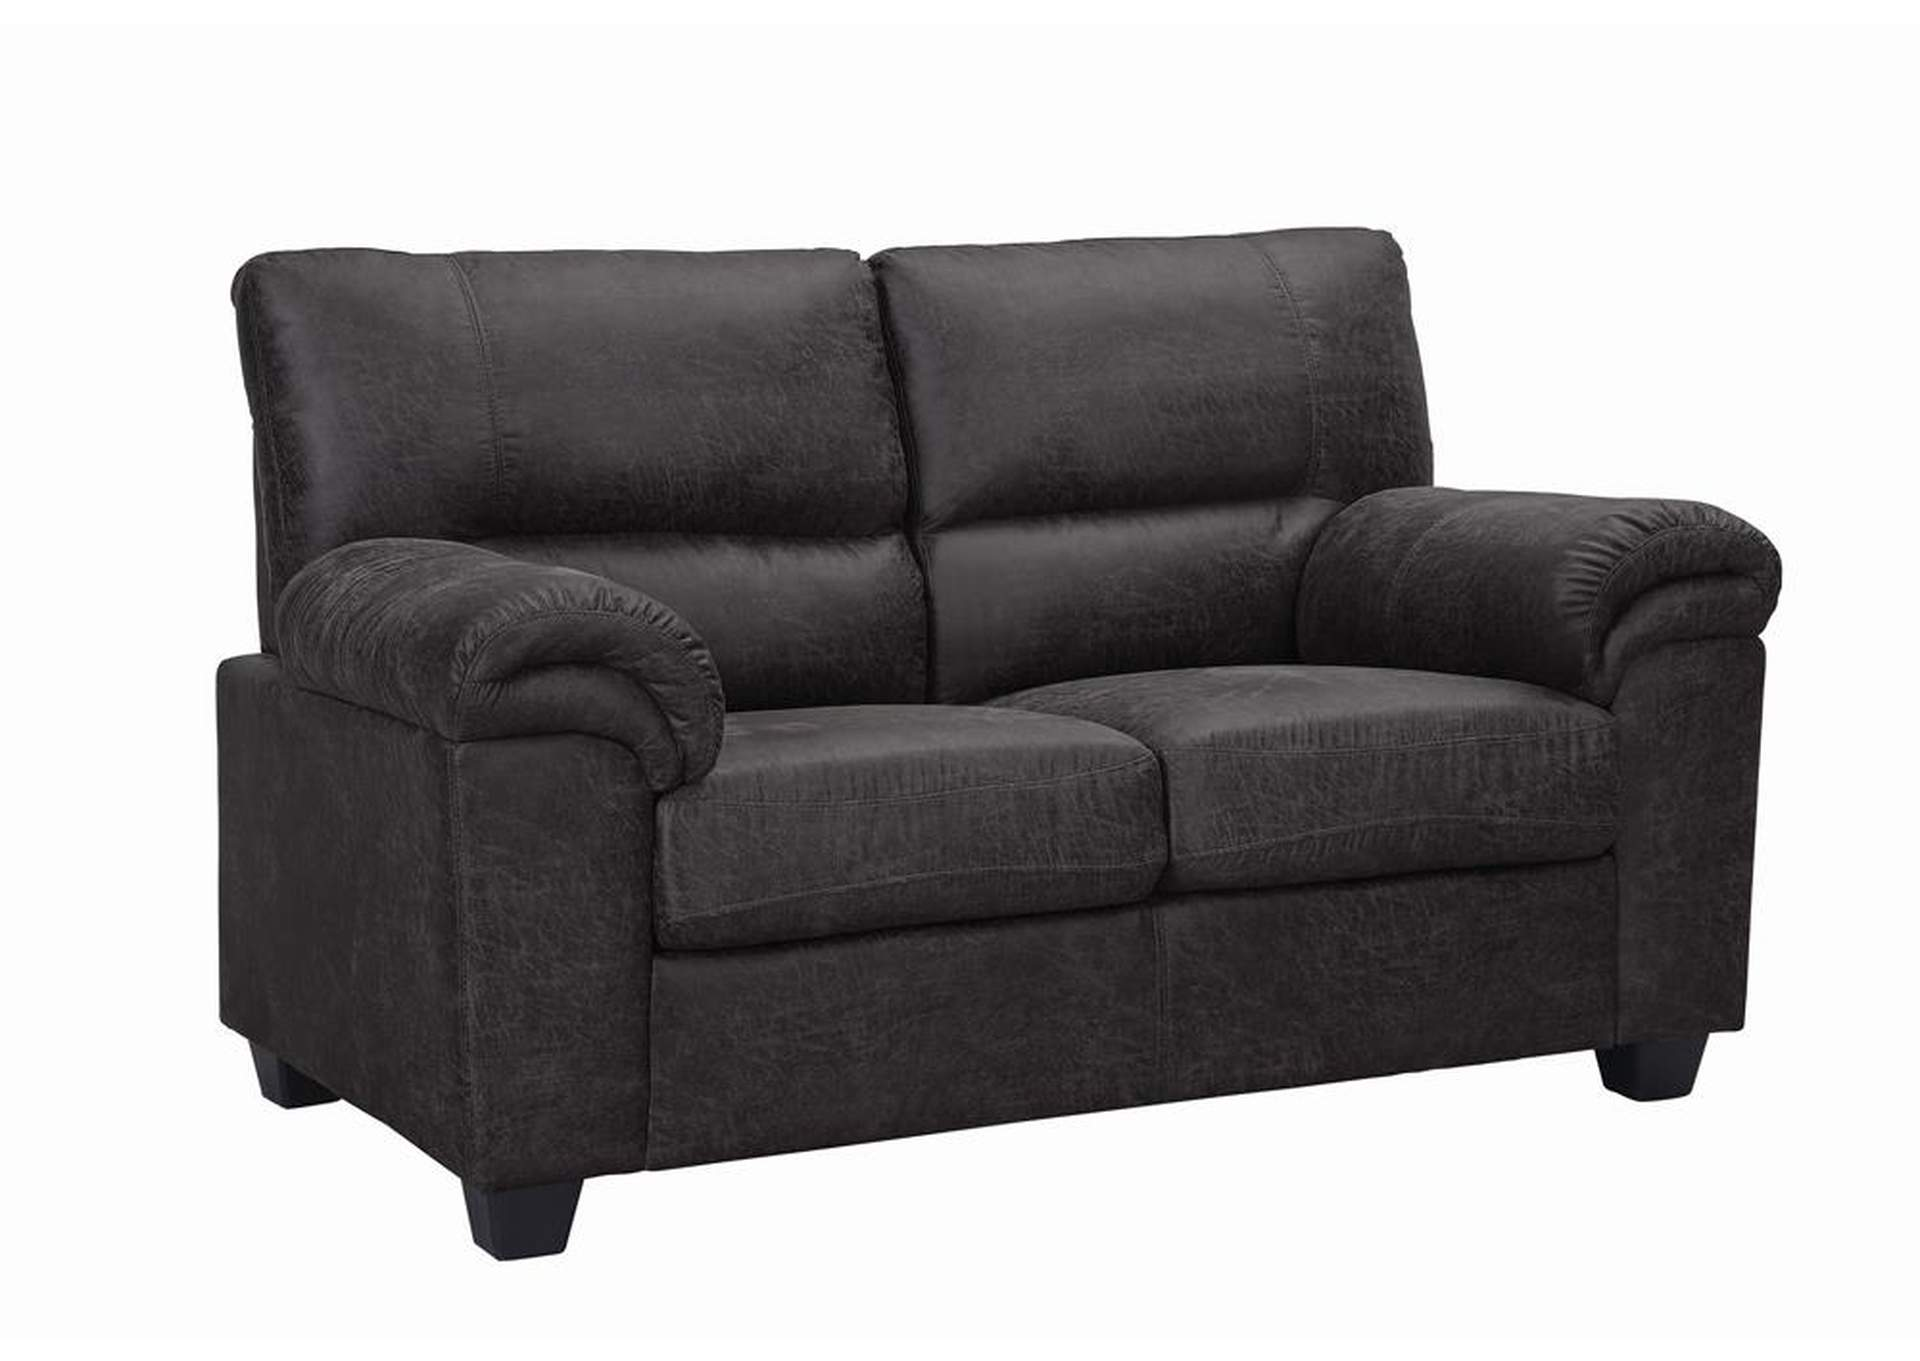 Black Stationary Fabric Loveseat,Coaster Furniture